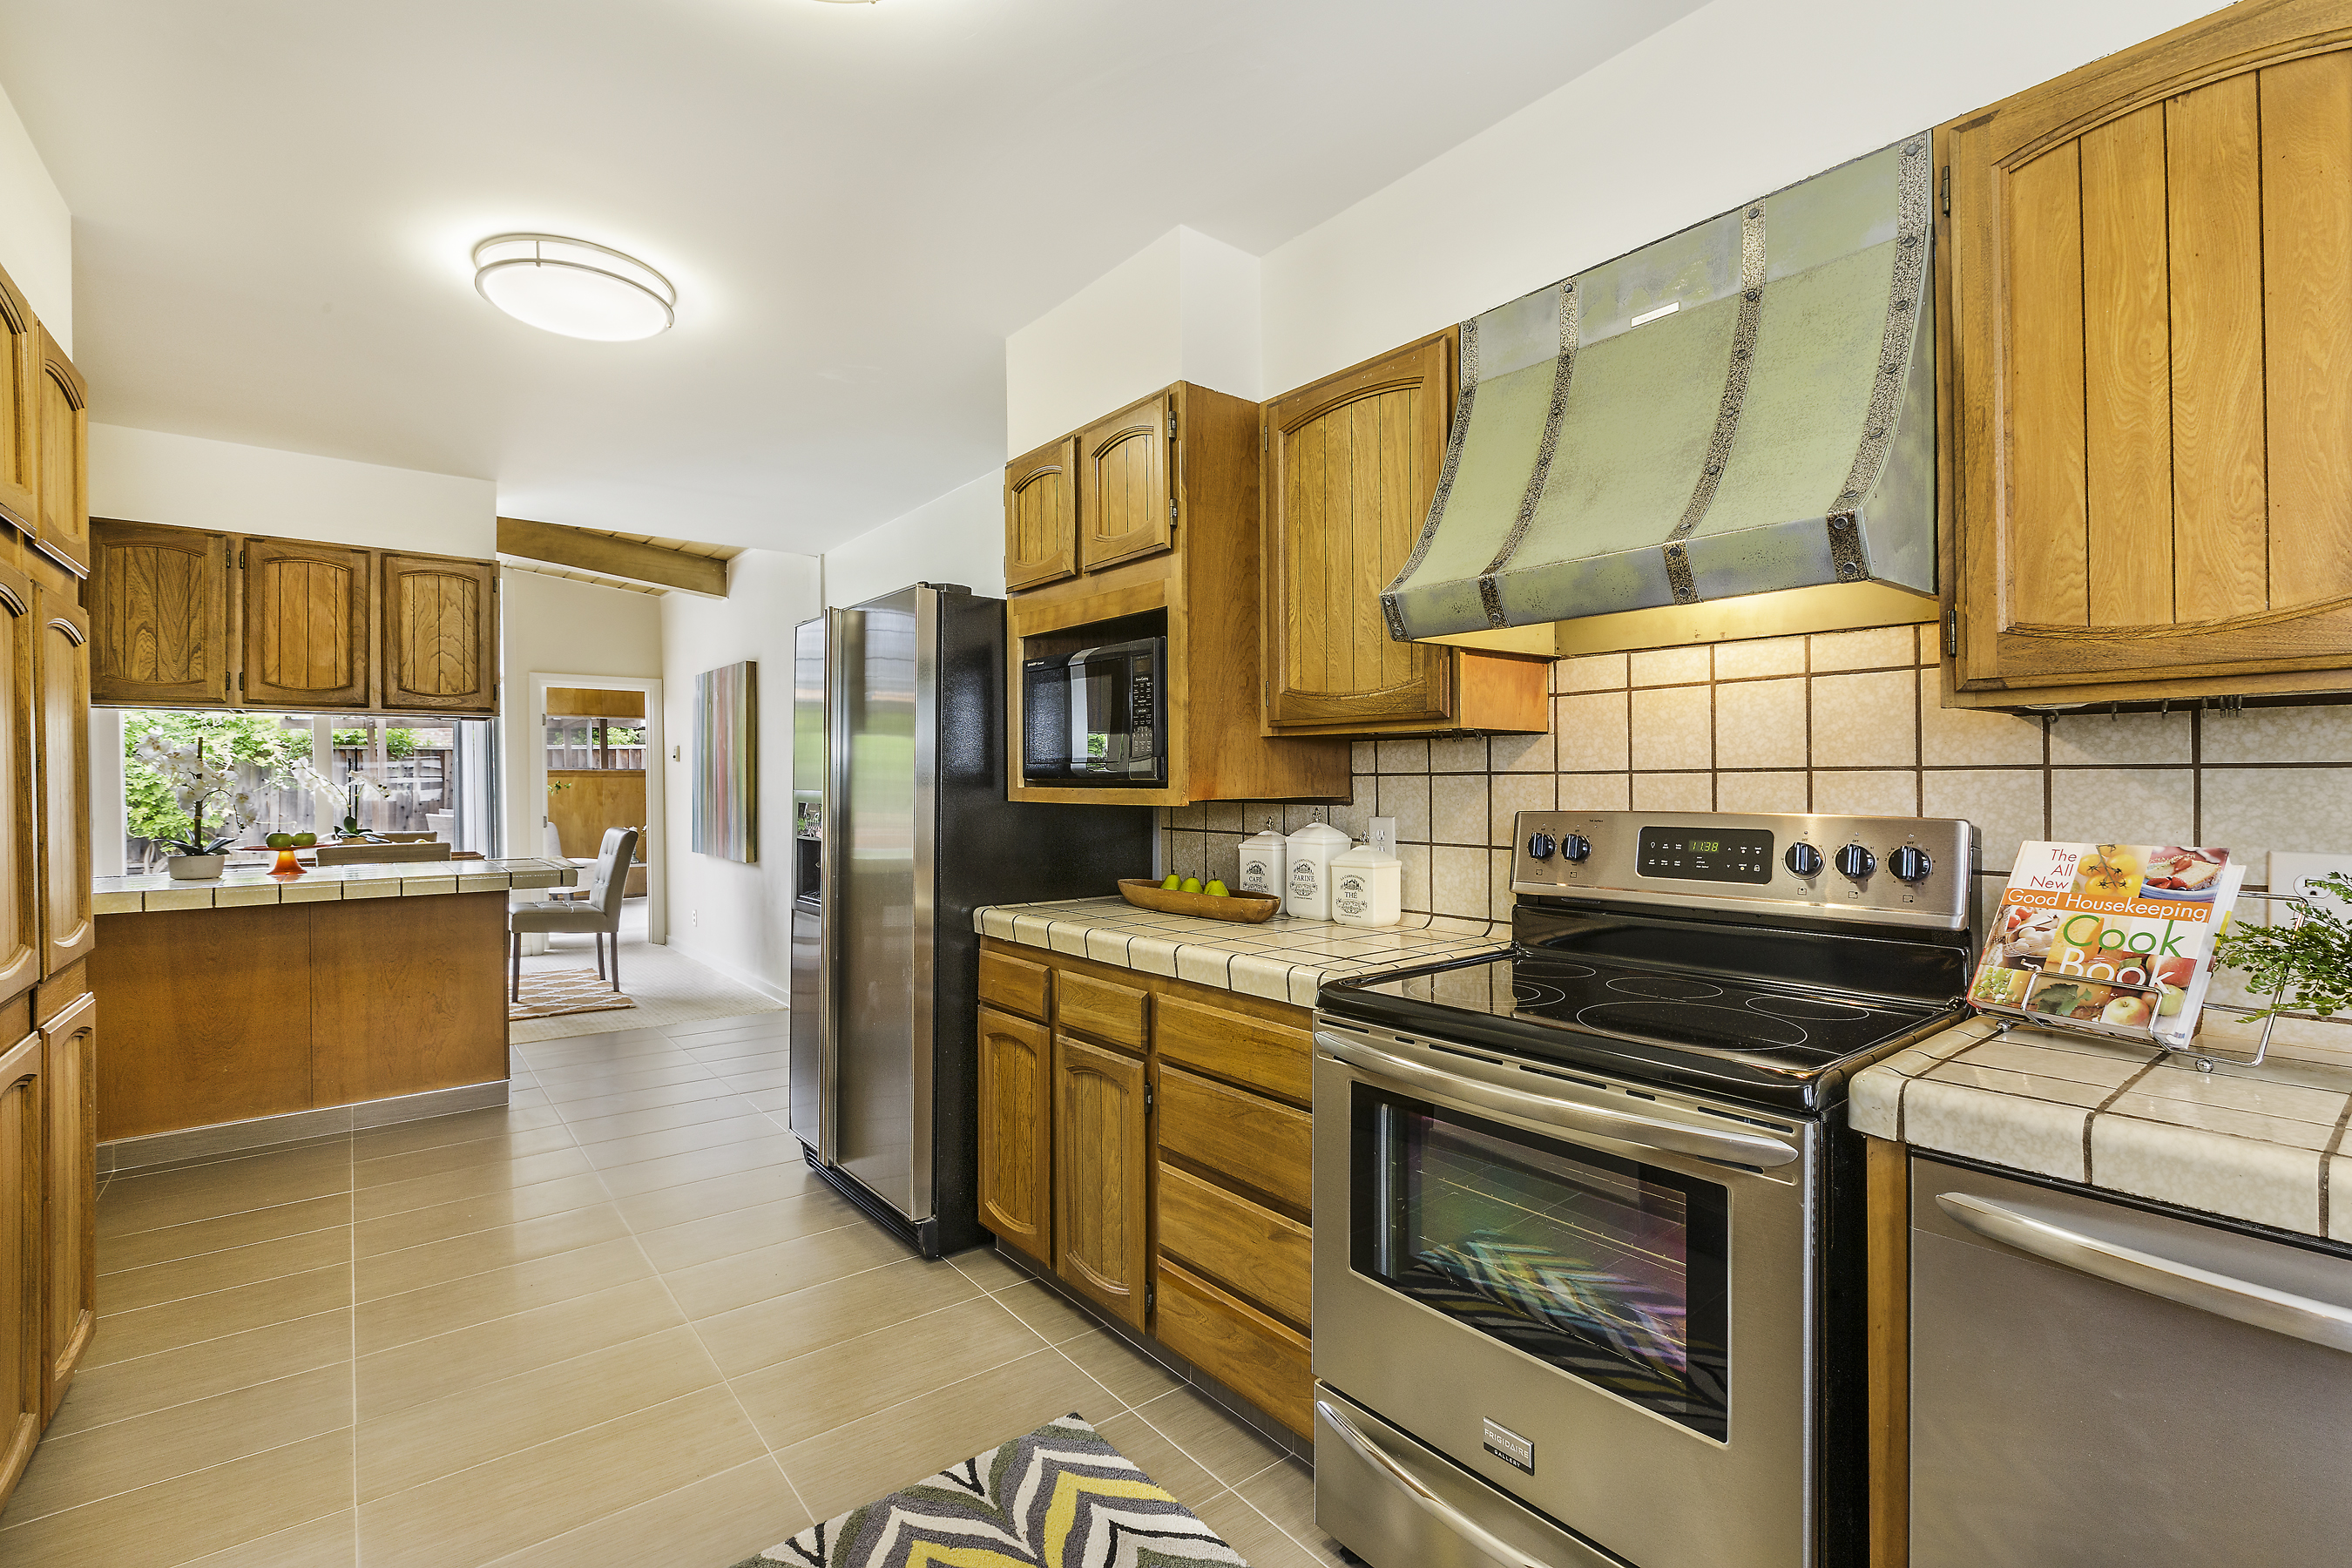 11-172-Atherwood-kitchen-high-res